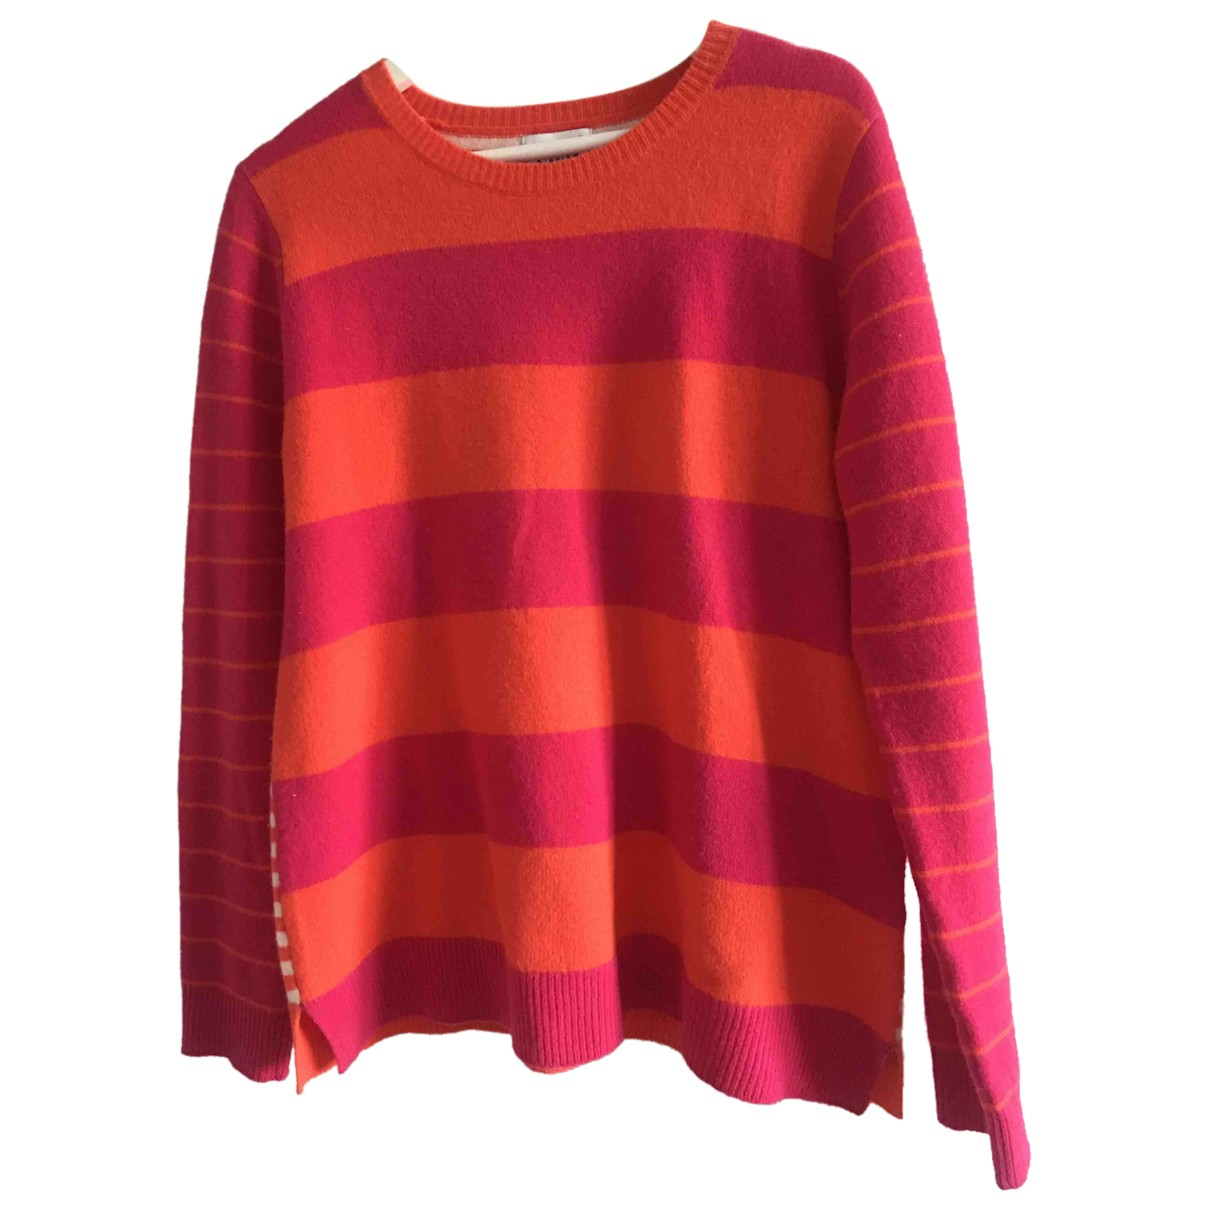 Clements Ribeiro N Multicolour Wool Knitwear for Women XL International